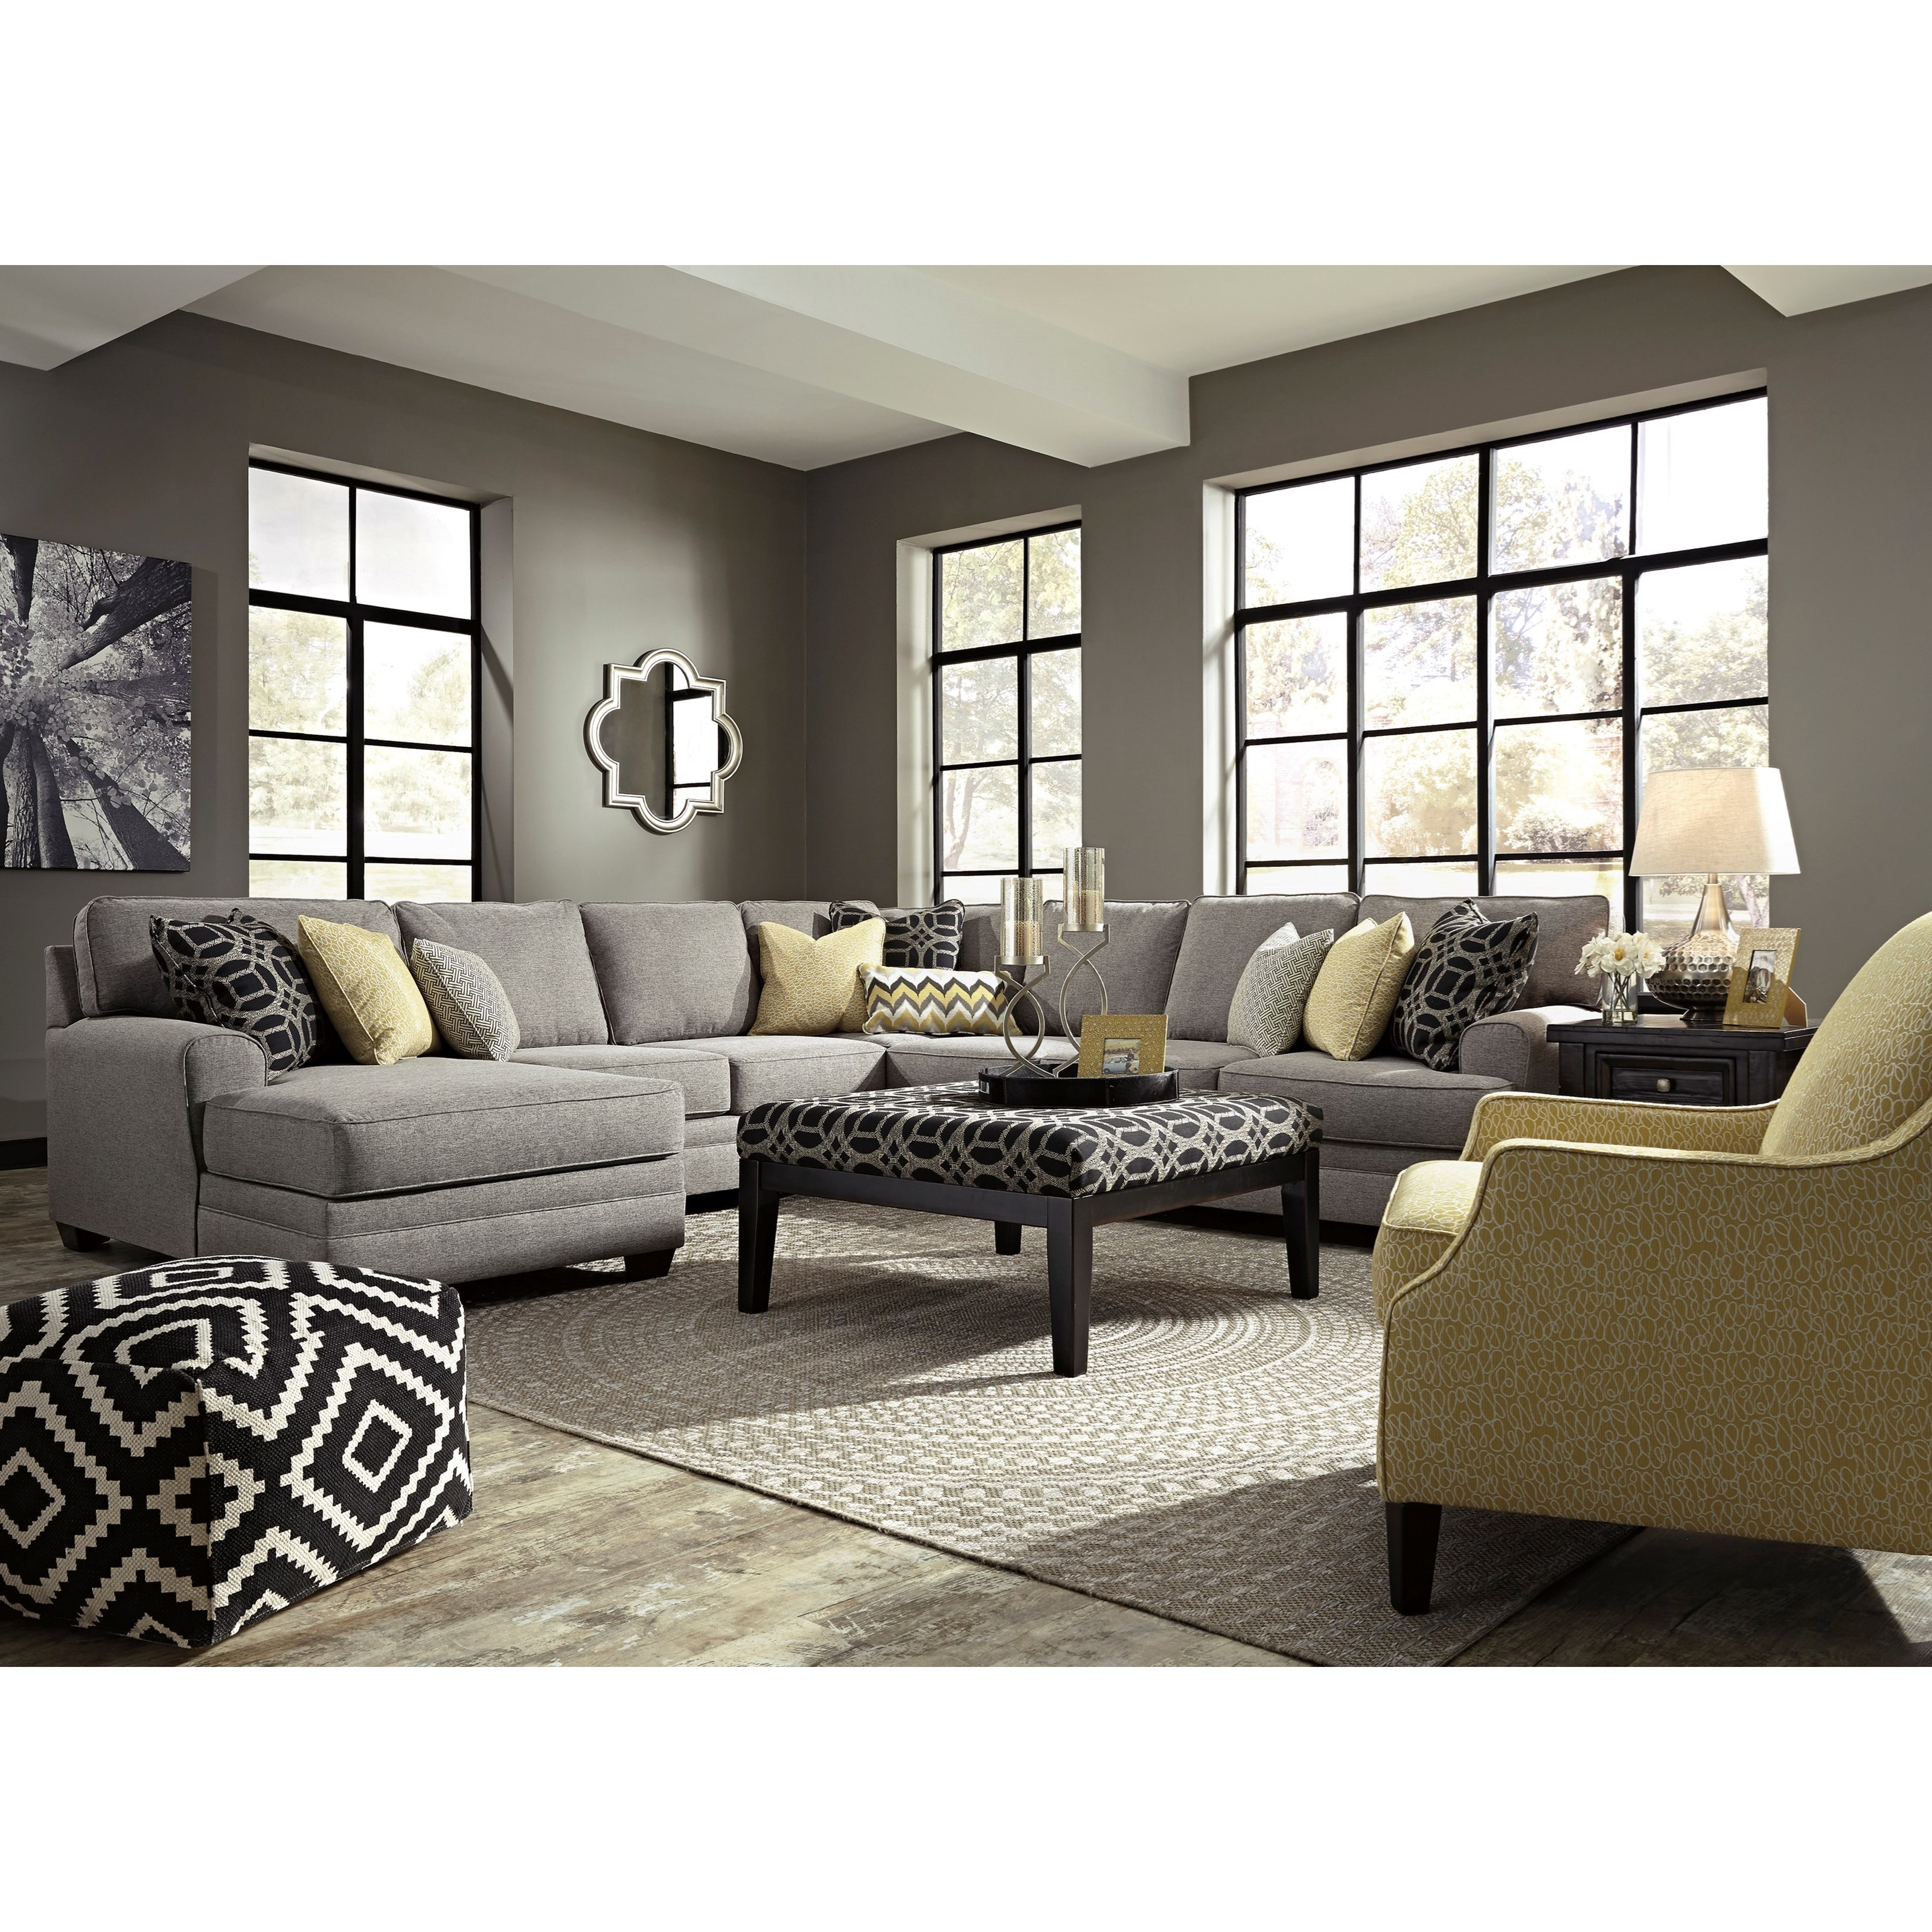 Benchcraft Cresson Stationary Living Room Group - Item Number: 54907 Living Room Group 6